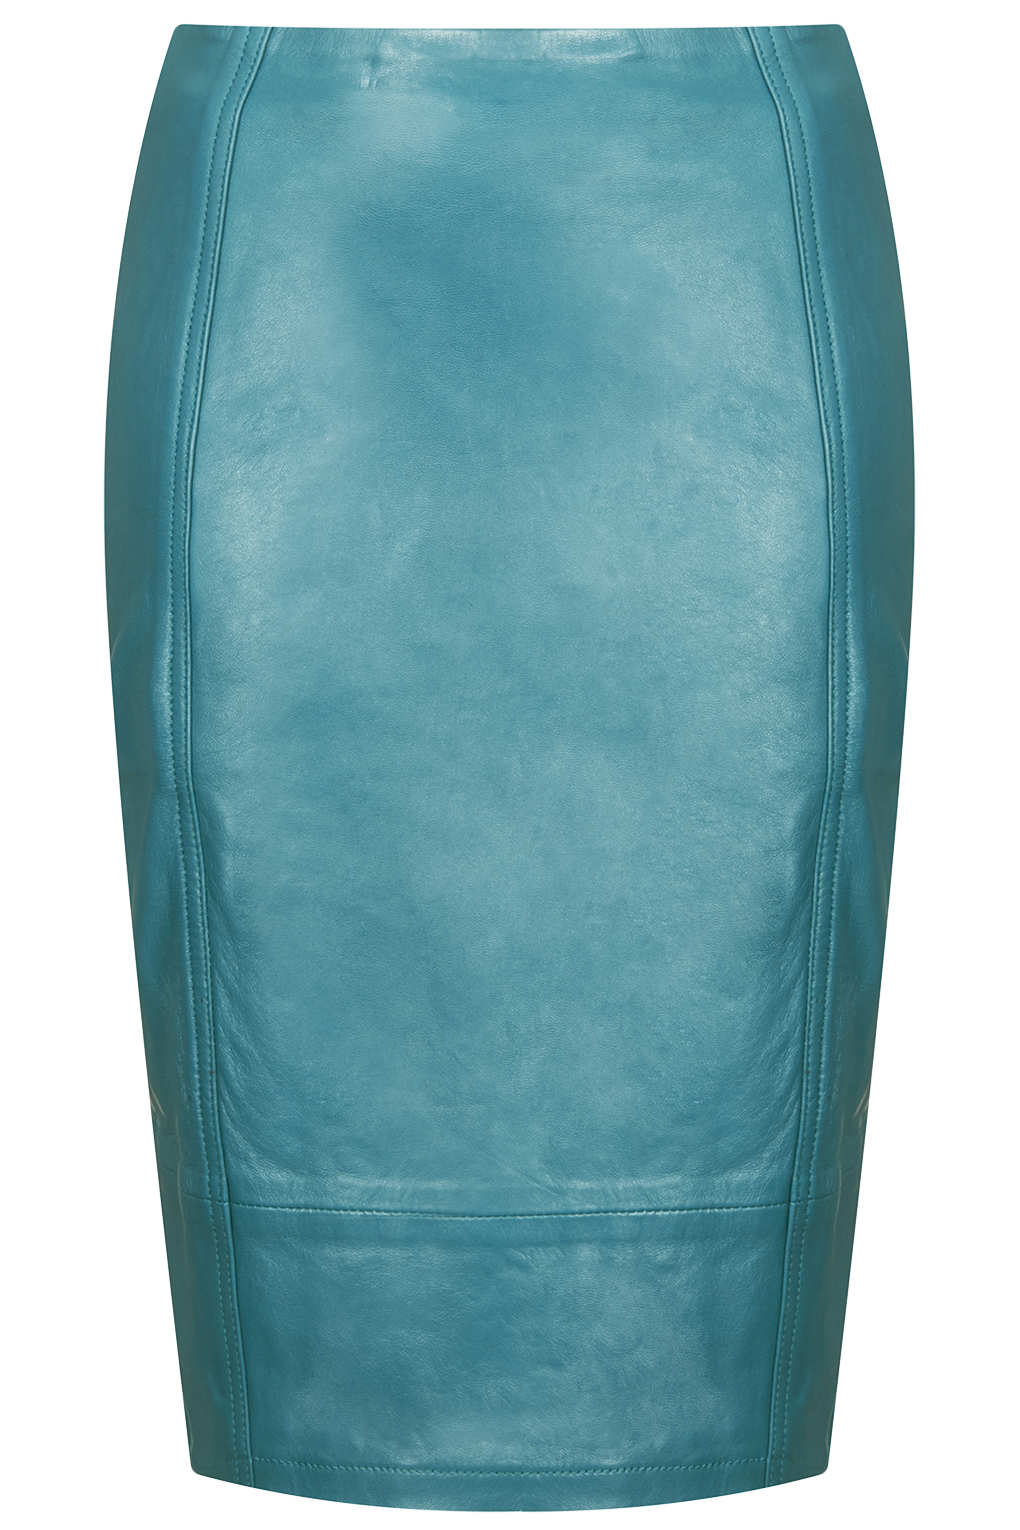 Topshop Leather Panel Pencil Skirt in Blue | Lyst